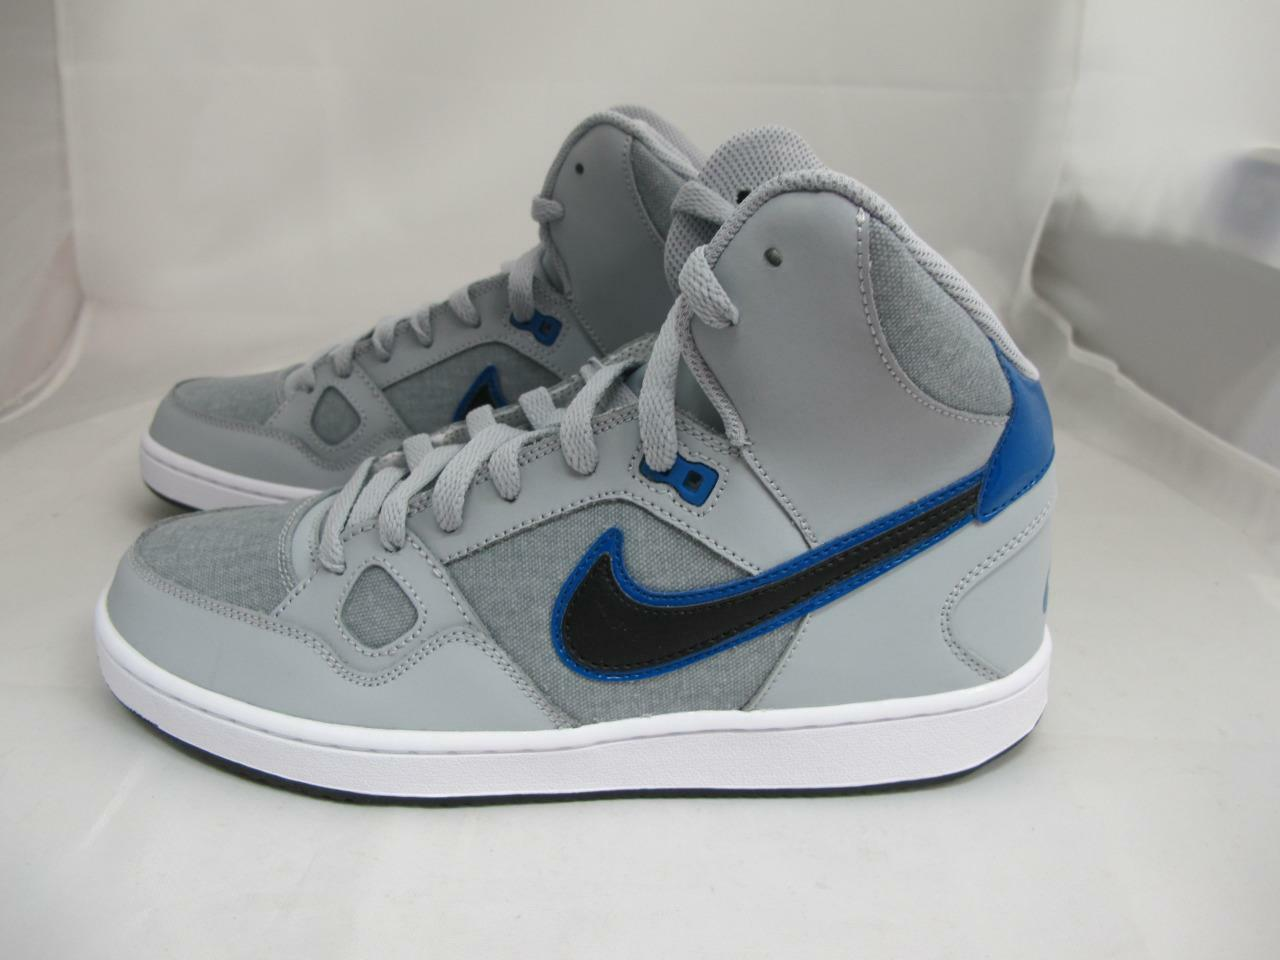 NEW MEN'S NIKE SON OF FORCE MID 616281-014